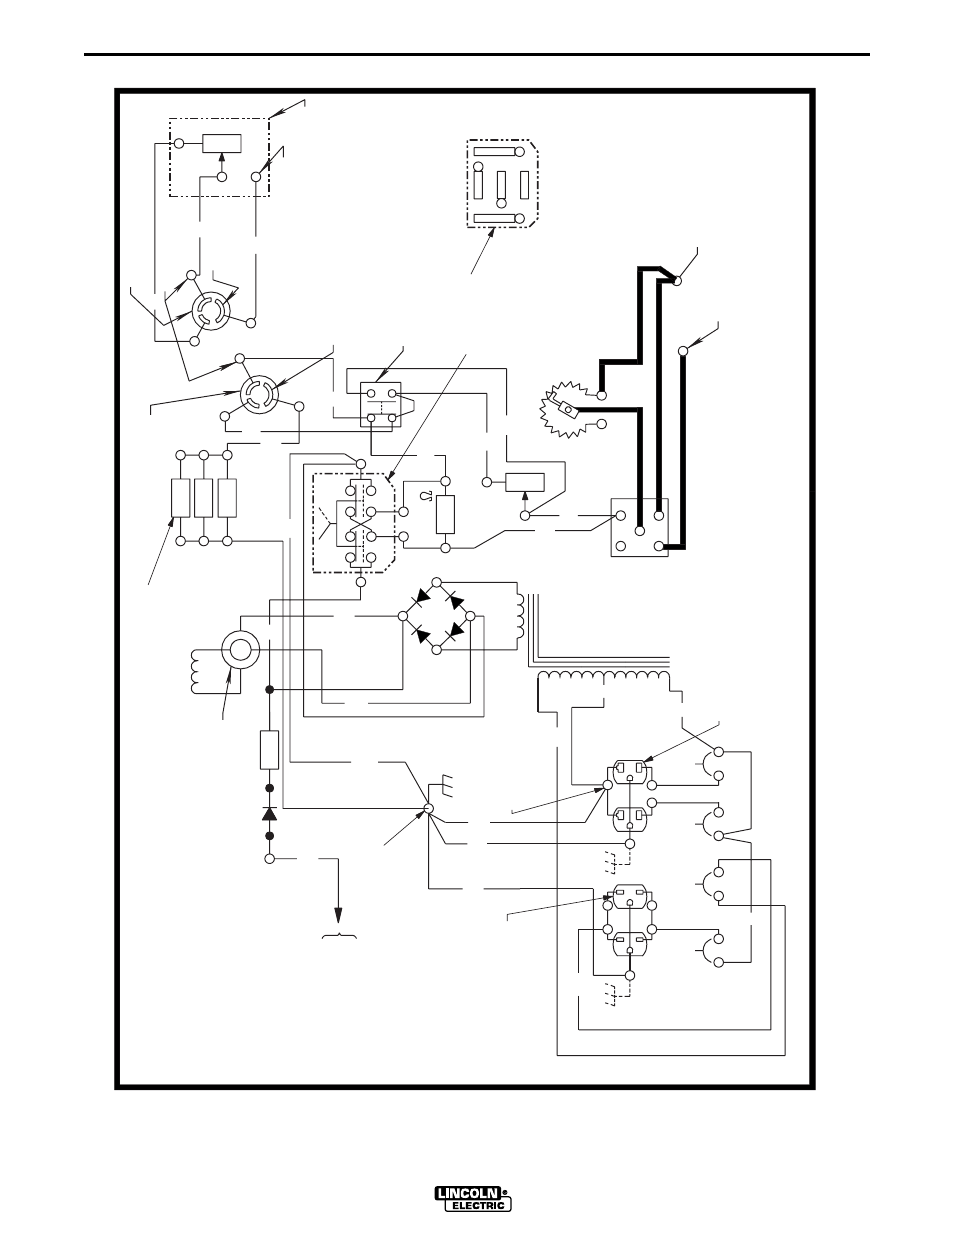 lincoln electric im581 sae400 page28 wiring diagrams, sae400 weld'n air, control wiring diagram sae 400